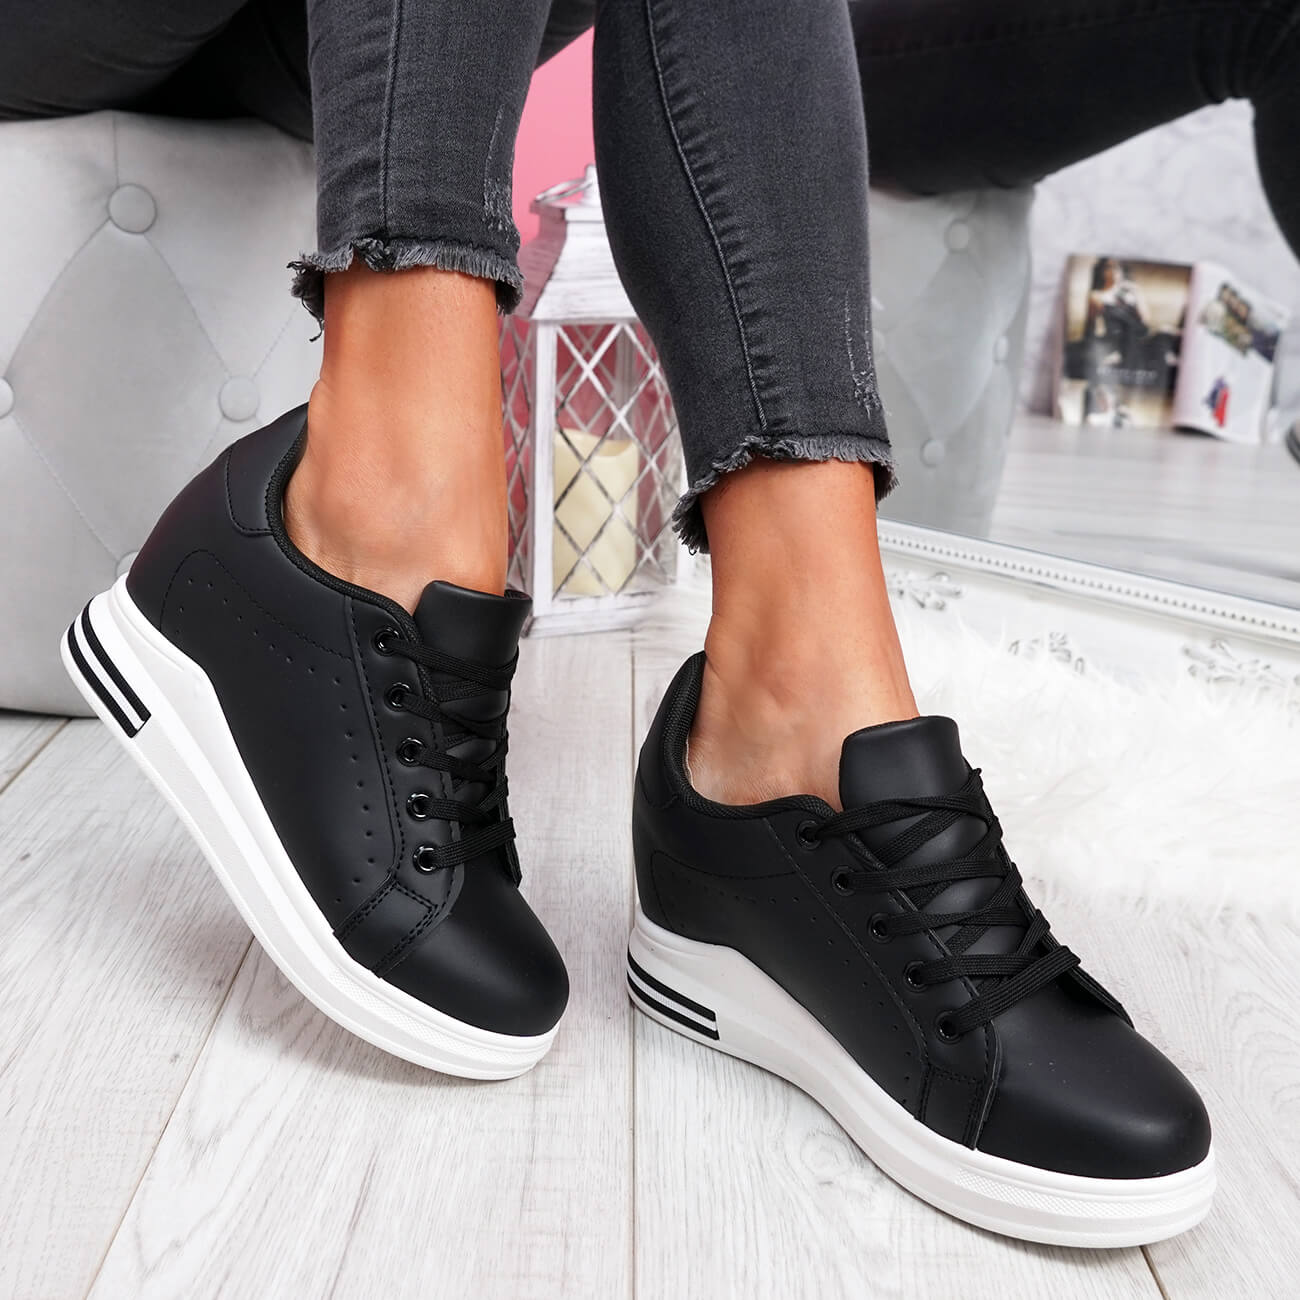 WOMENS-LADIES-LACE-UP-WEDGE-TRAINERS-HEEL-SNEAKERS-SHINY-PARTY-WOMEN-SHOES thumbnail 8